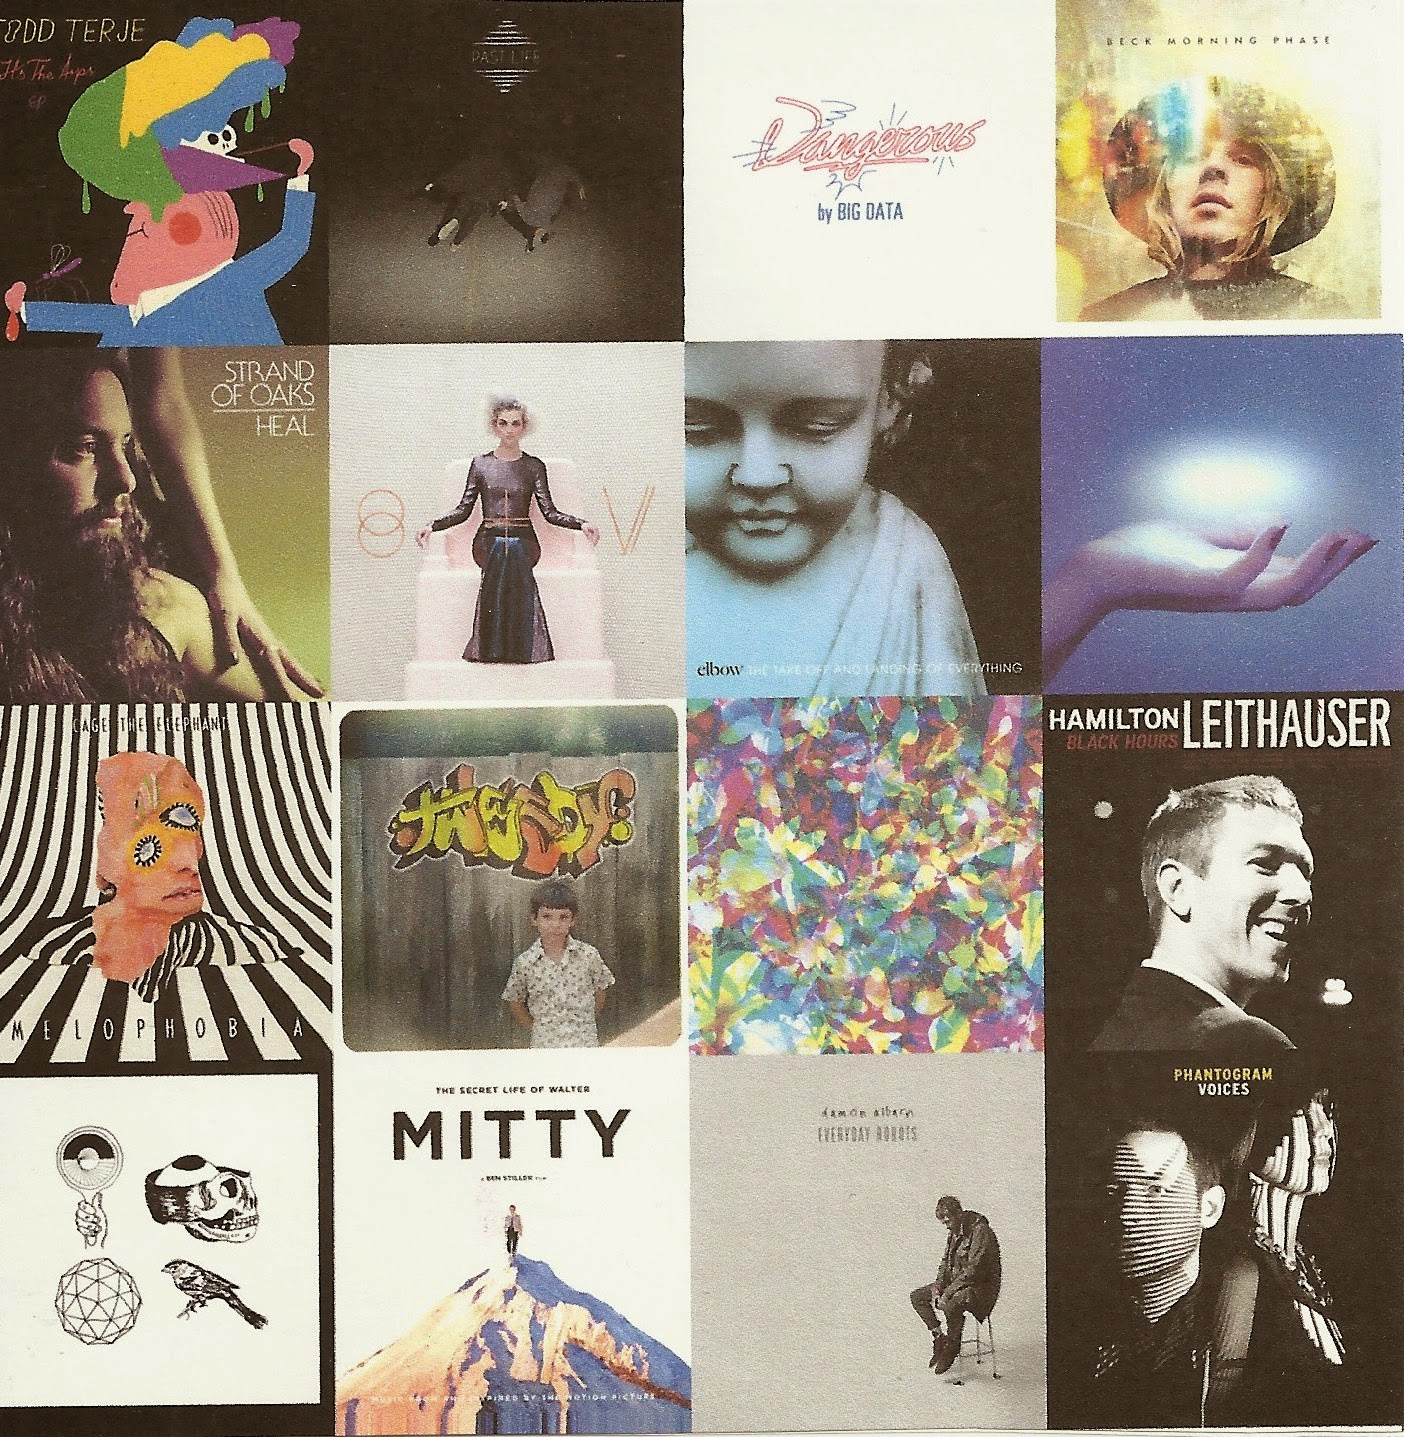 New Music Matters: Top 20+ Songs of 2014 With YouTube Playlist